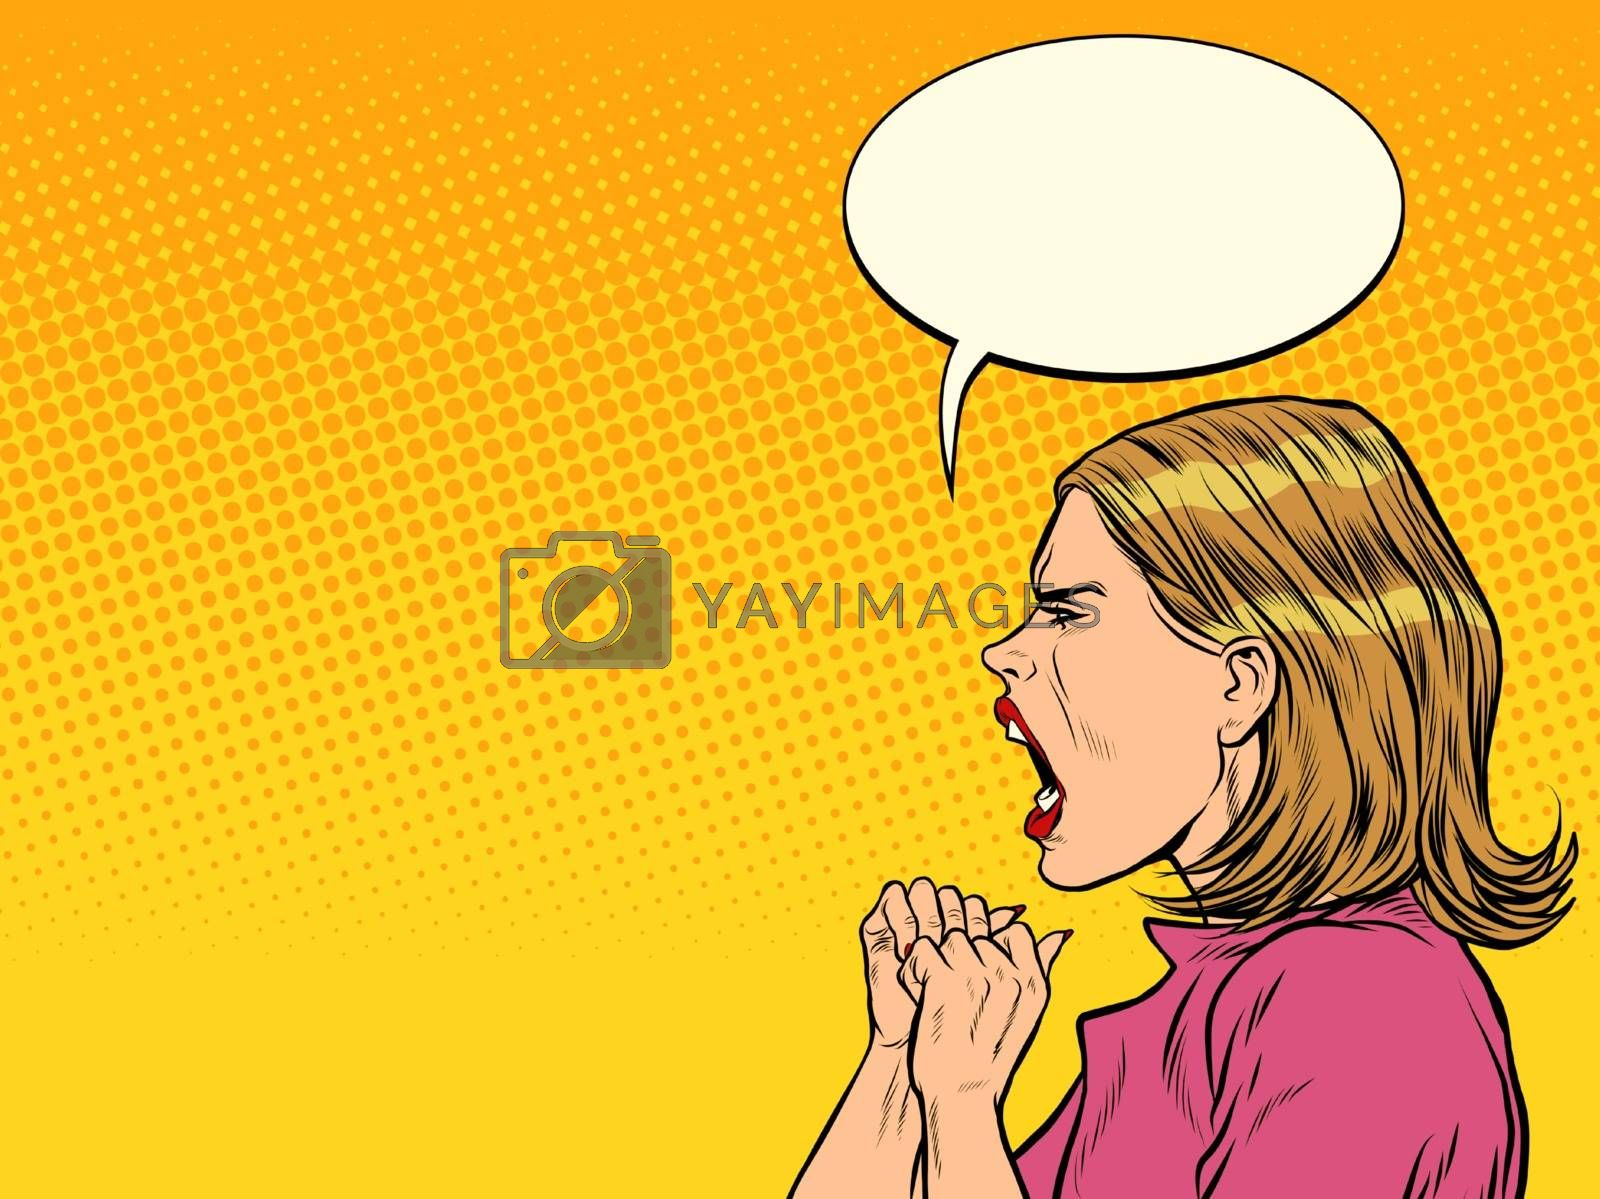 angry woman screaming. Pop art retro vector illustration vintage kitsch 50s 60s style